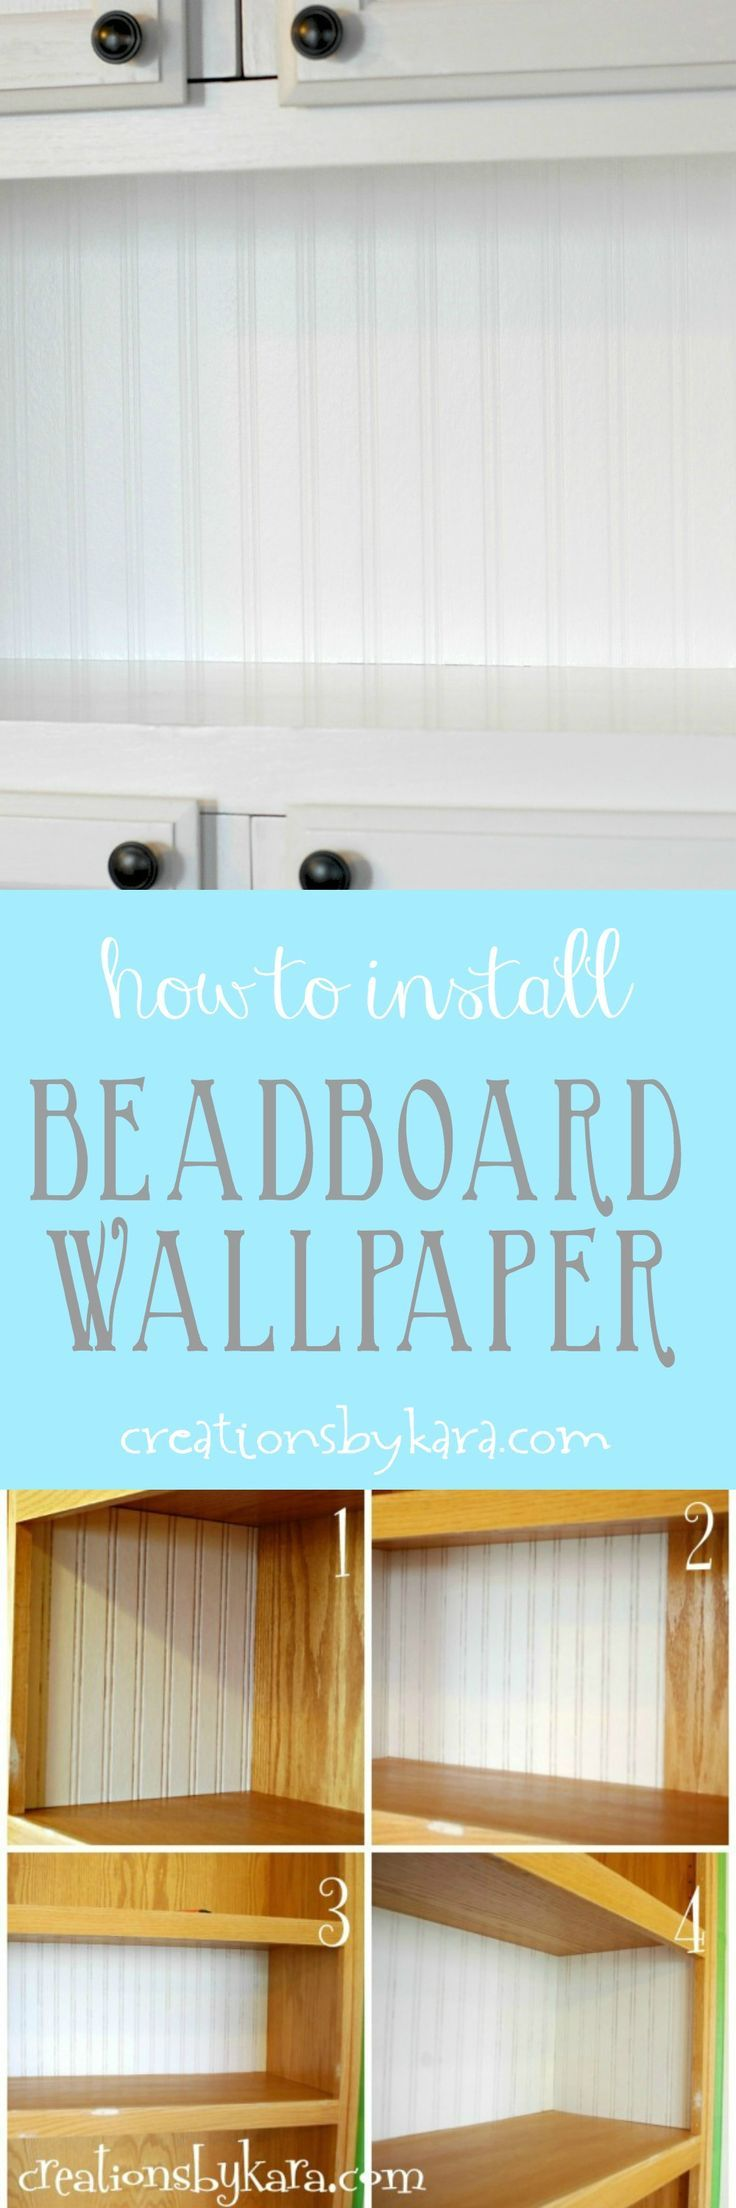 Learn how to install bead board wallpaper with this step by step ...